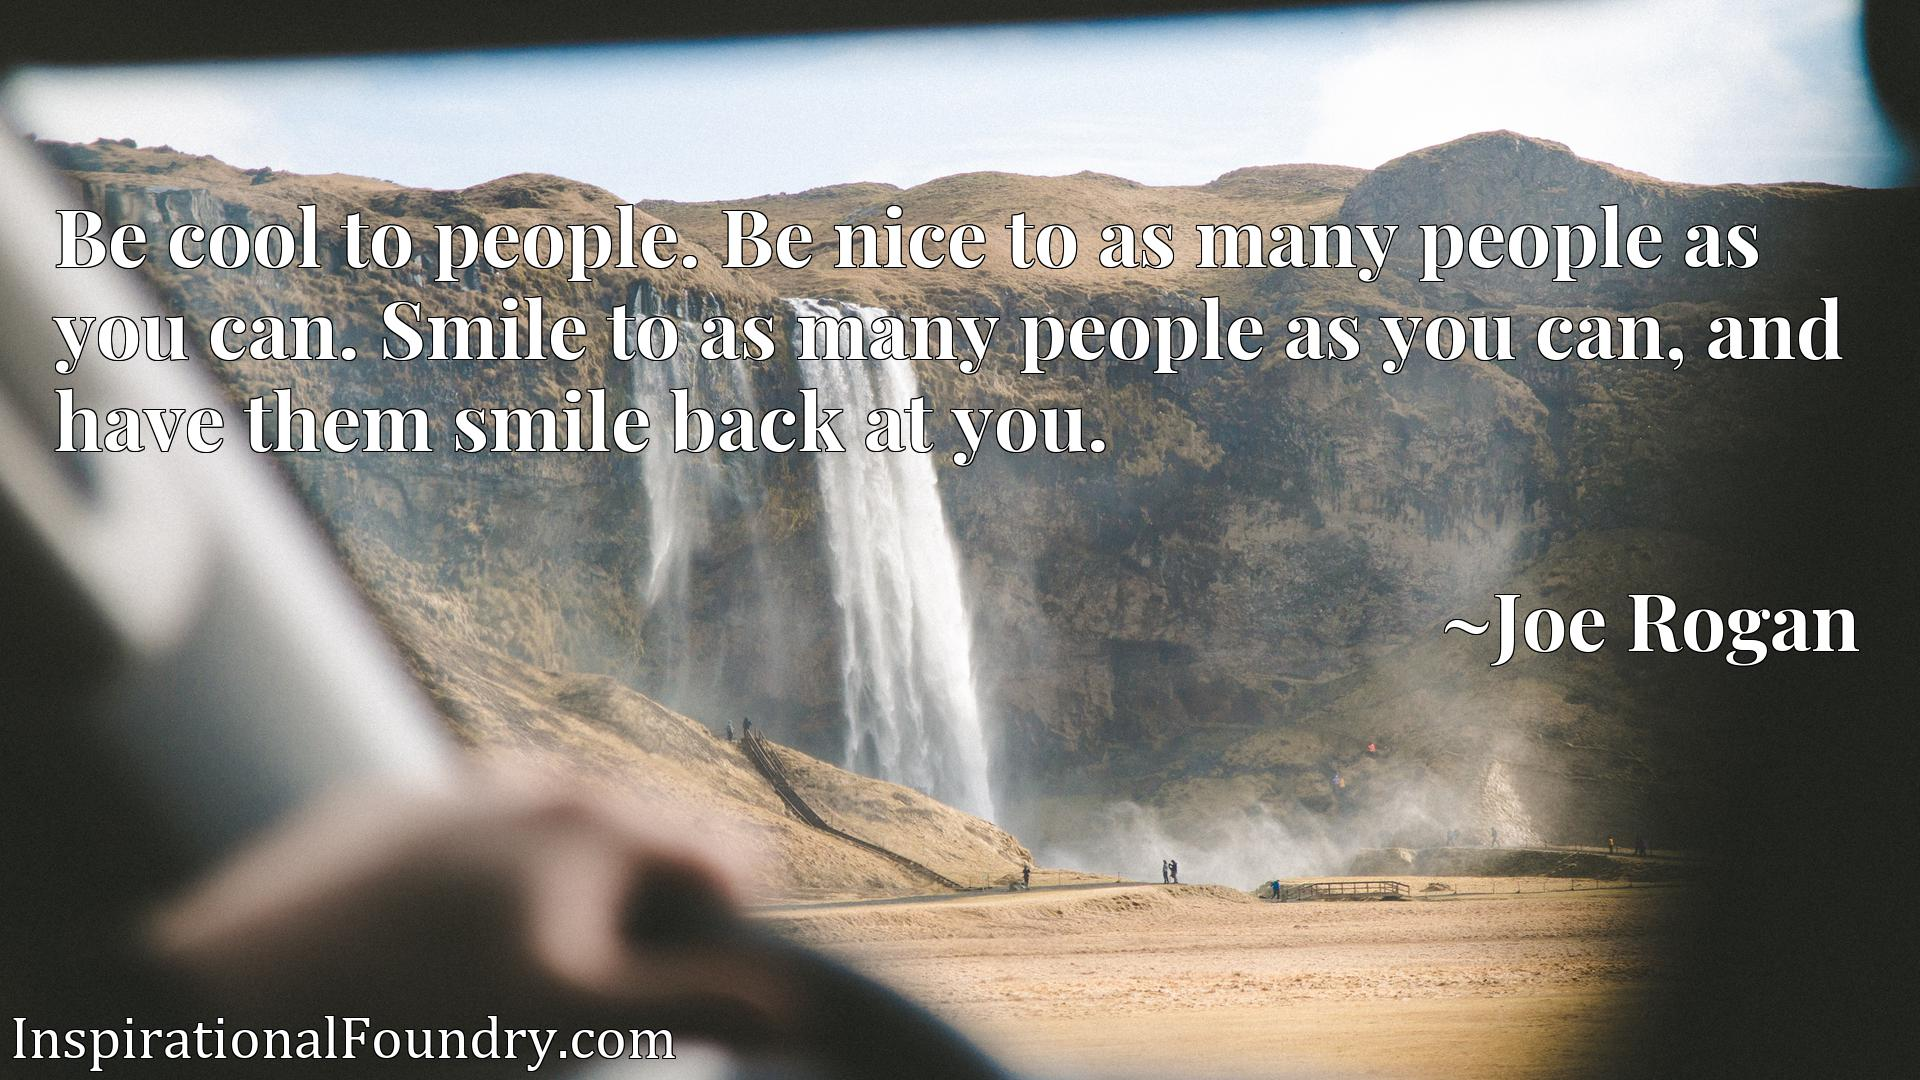 Be cool to people. Be nice to as many people as you can. Smile to as many people as you can, and have them smile back at you.